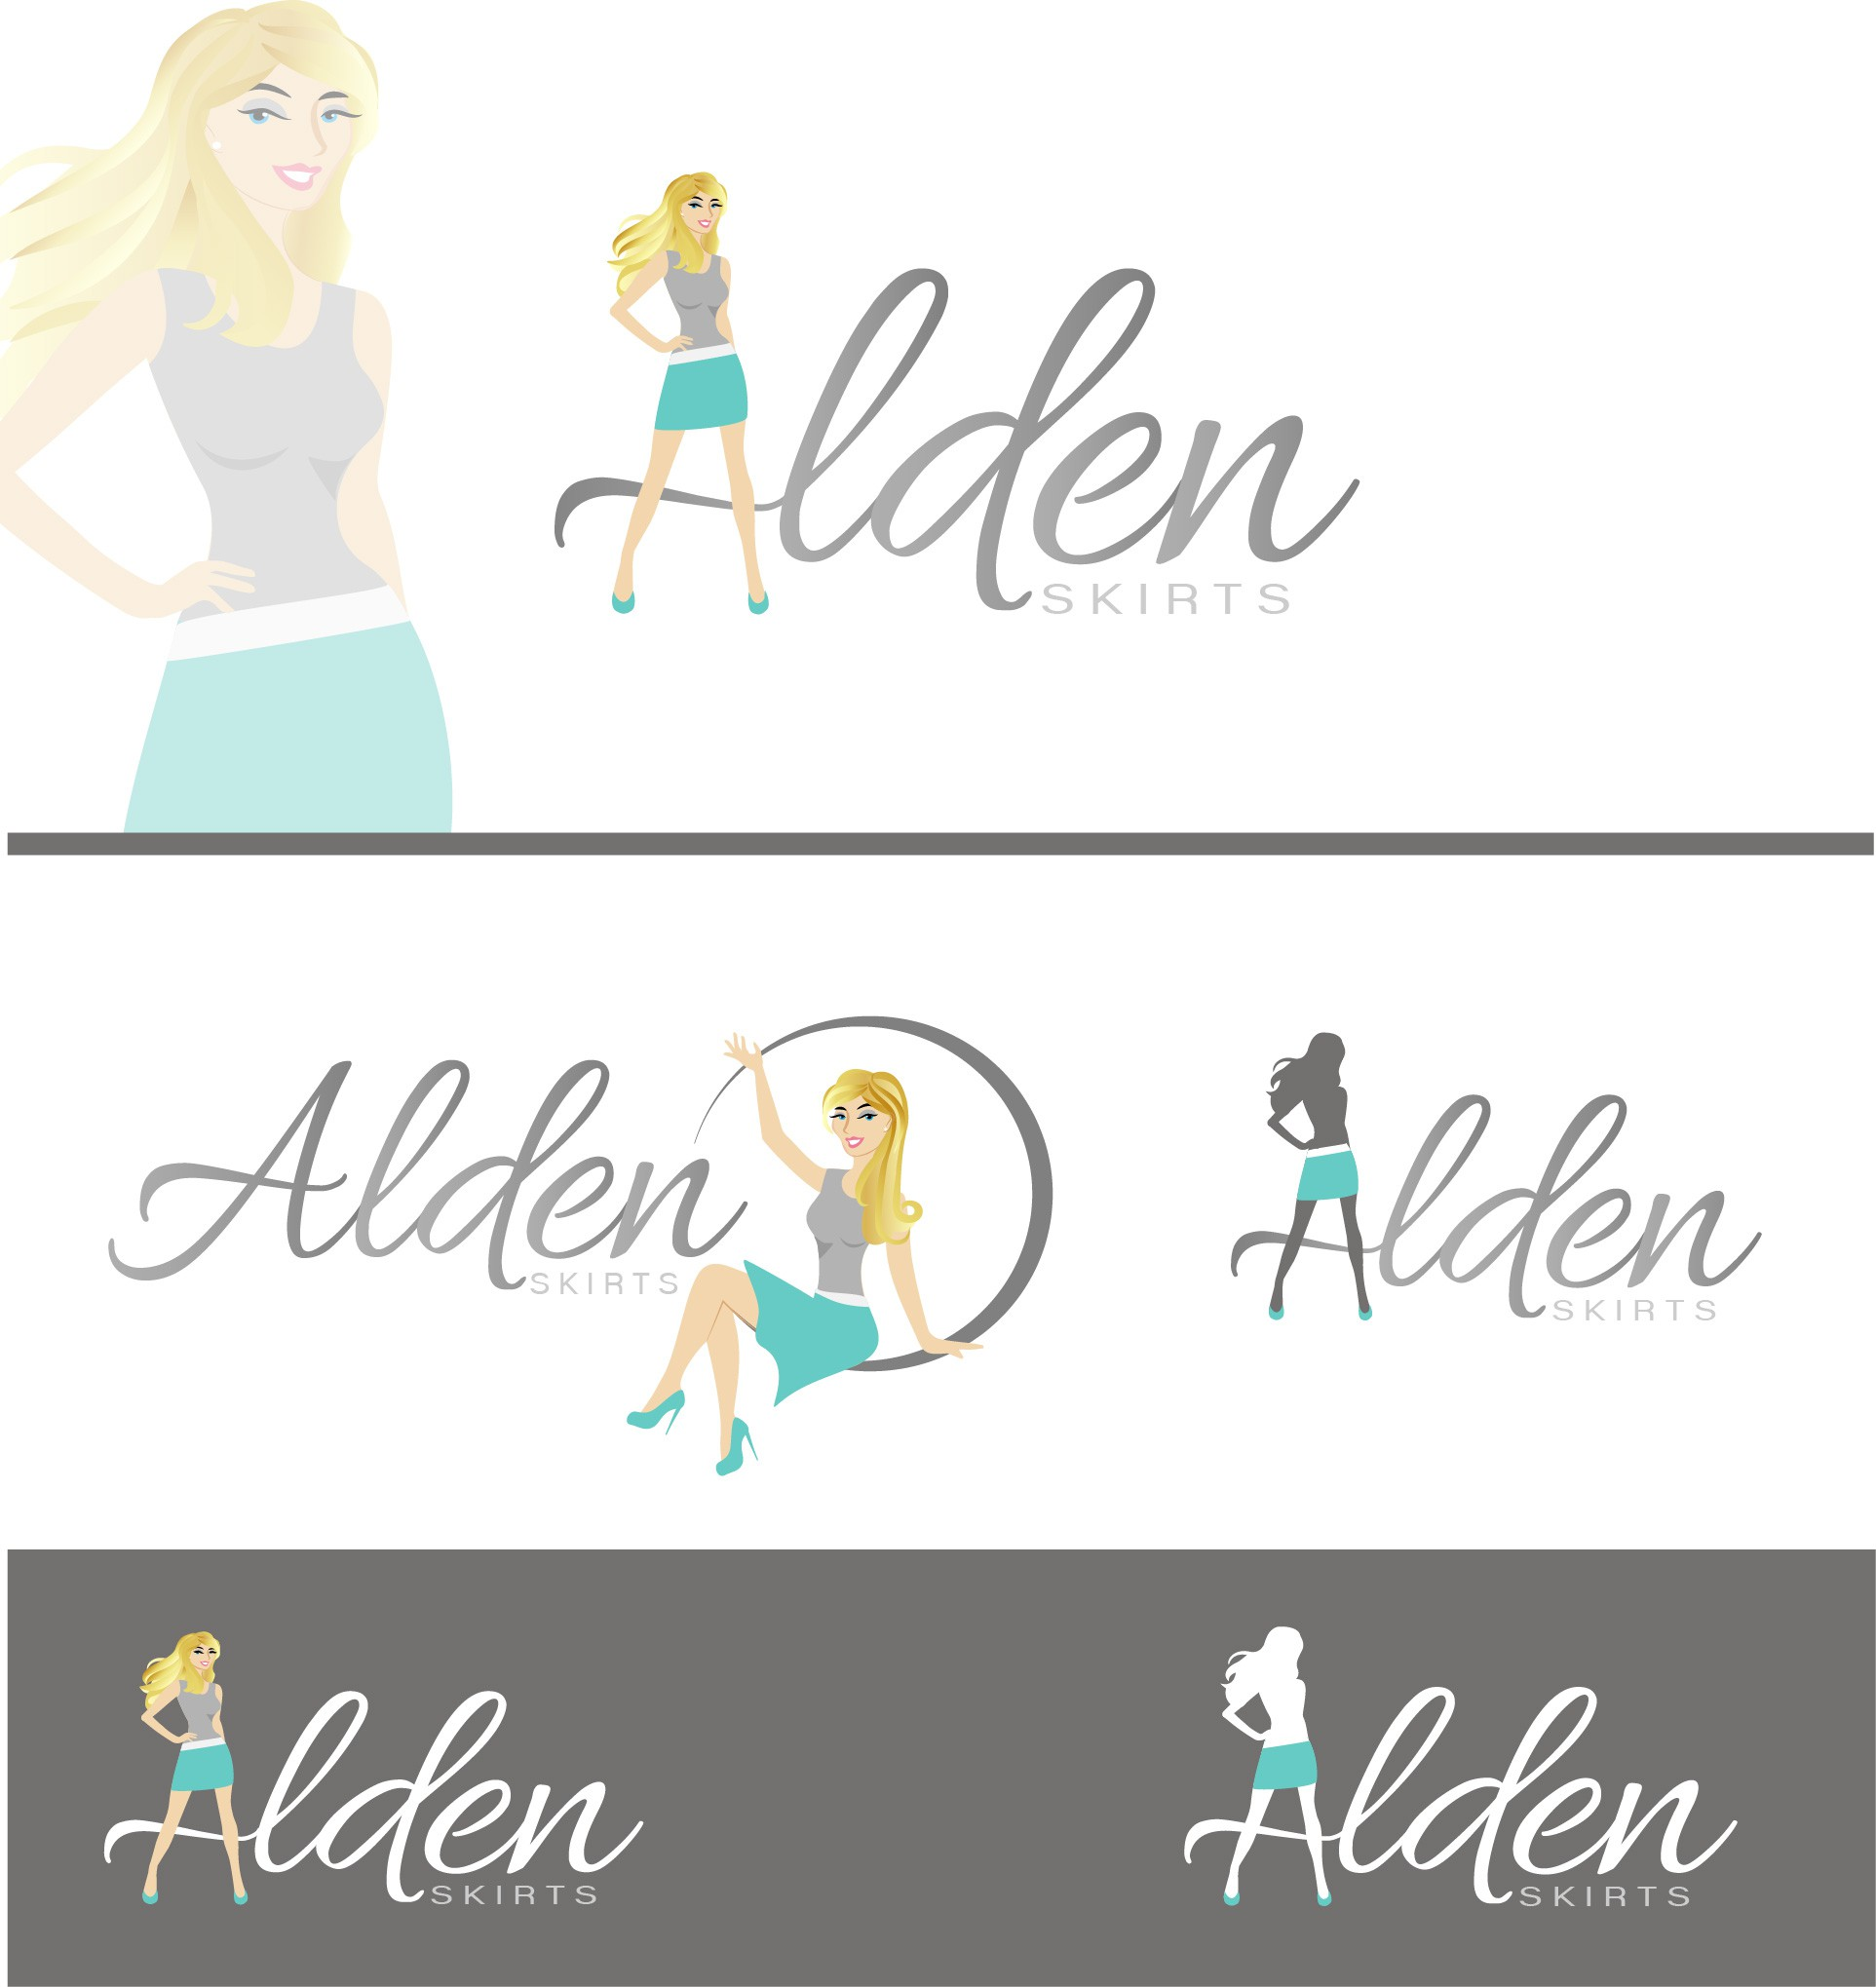 logo for Alden